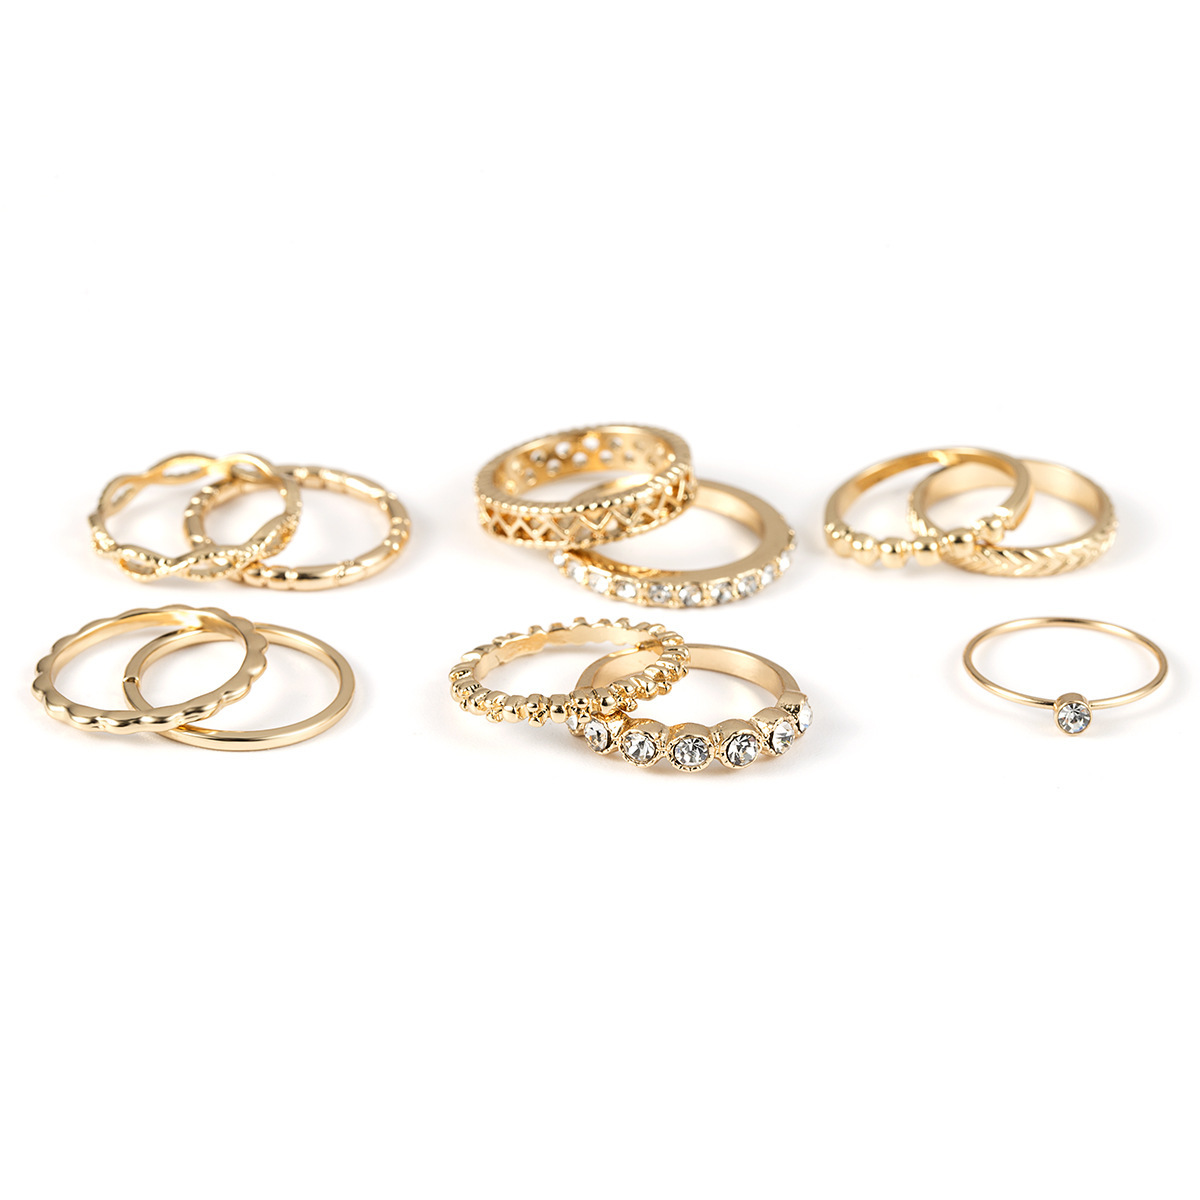 11 Pcs Stackable Bohemian Ring Set Crown Gold Rings for Women Trendy Punk Boho Vintage Crystal Ring Jewelry Accessories in Rings from Jewelry Accessories